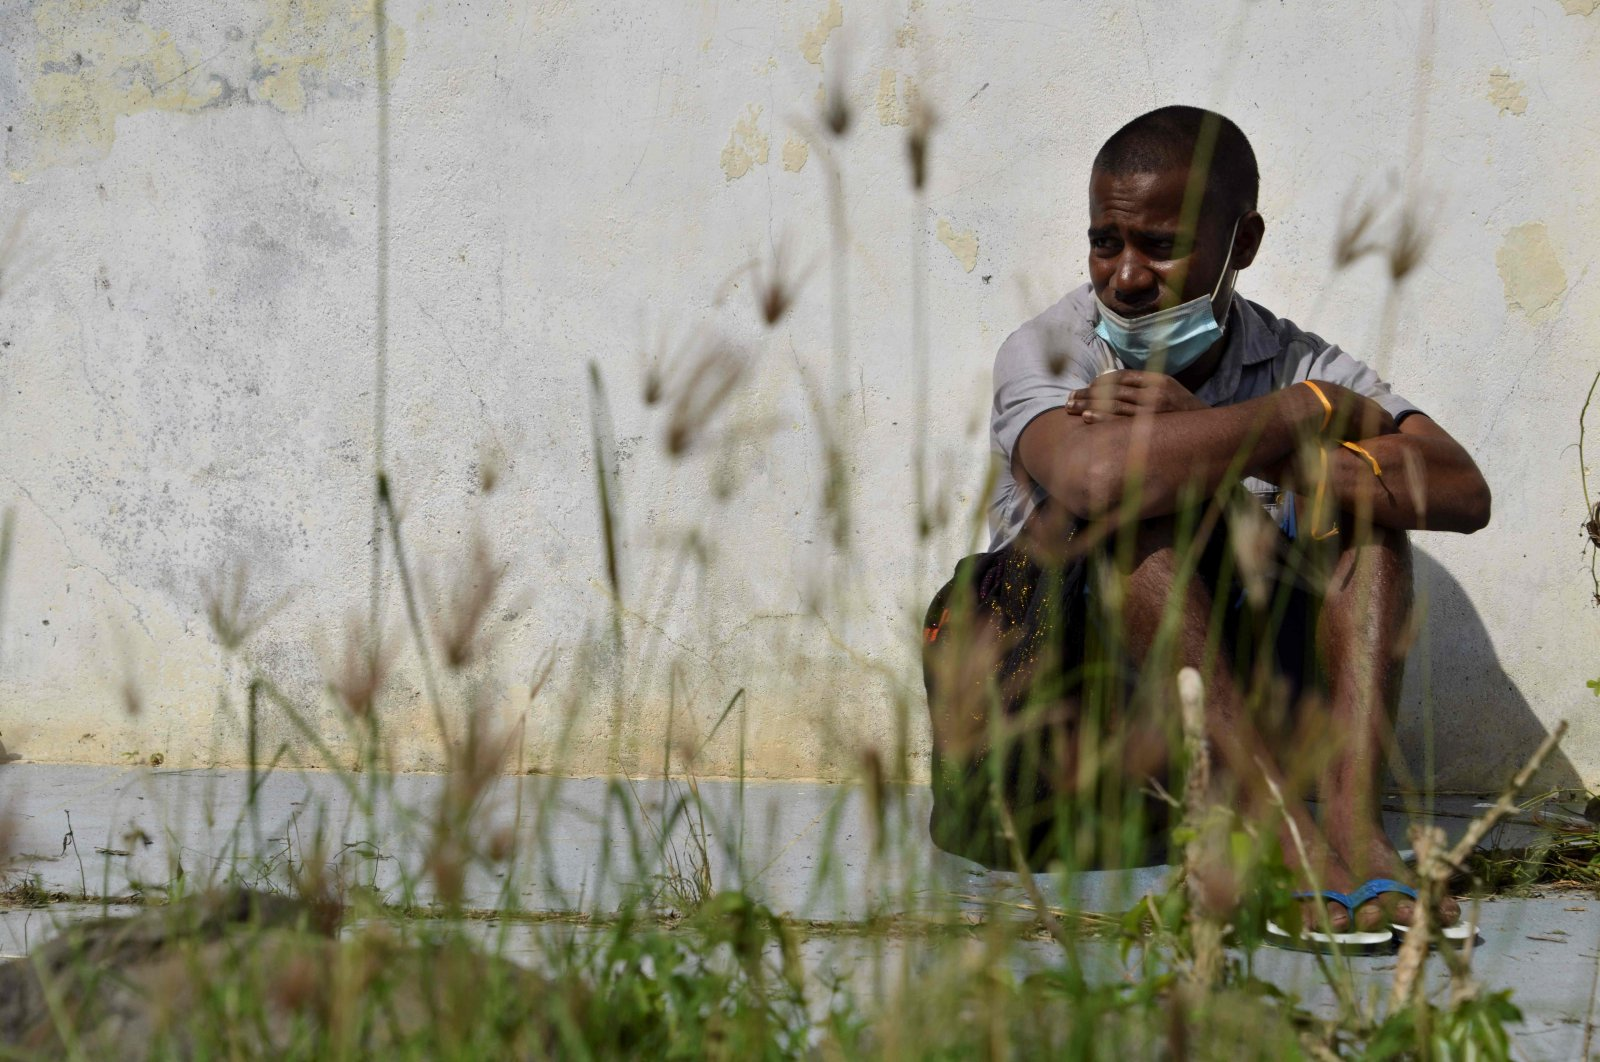 A Rohingya from Myanmar sits outside an immigration detention center in Lhokseumawe, in Indonesia's North Aceh Regency, June 26, 2020. (AFP Photo)